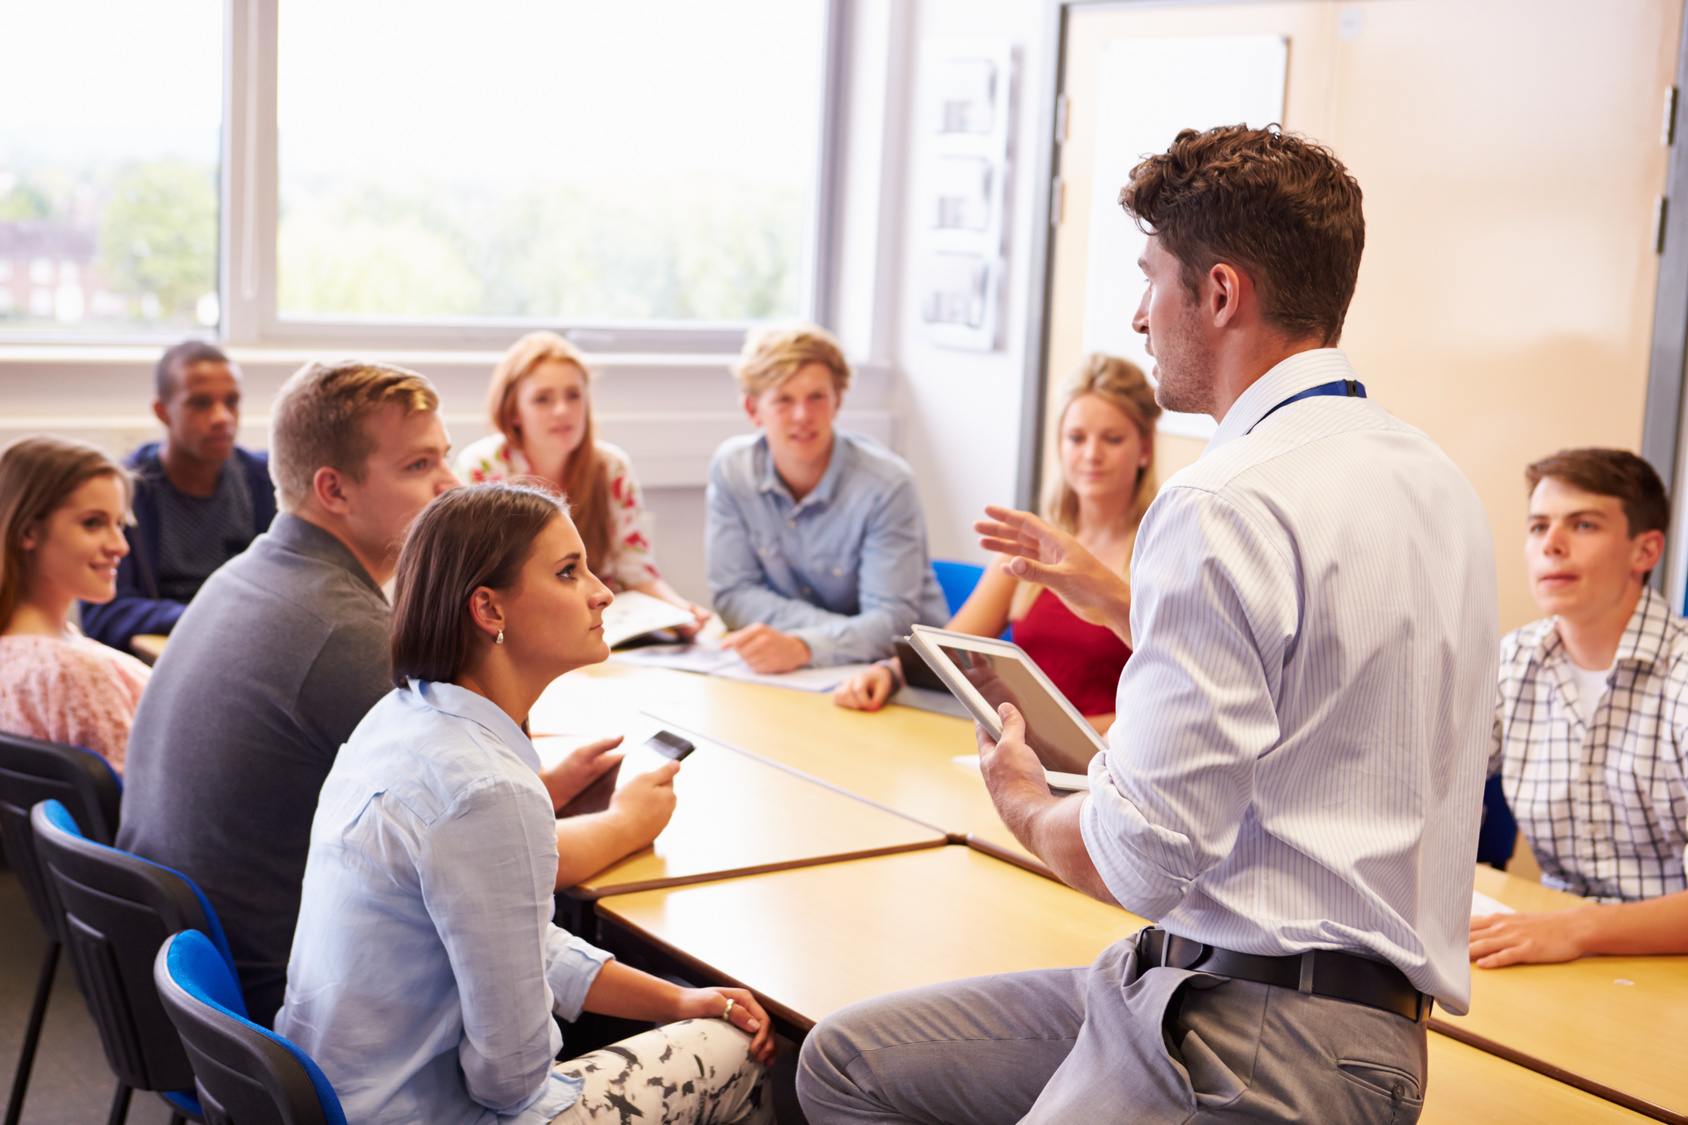 the role of a teacher is to provide guidance for pupils